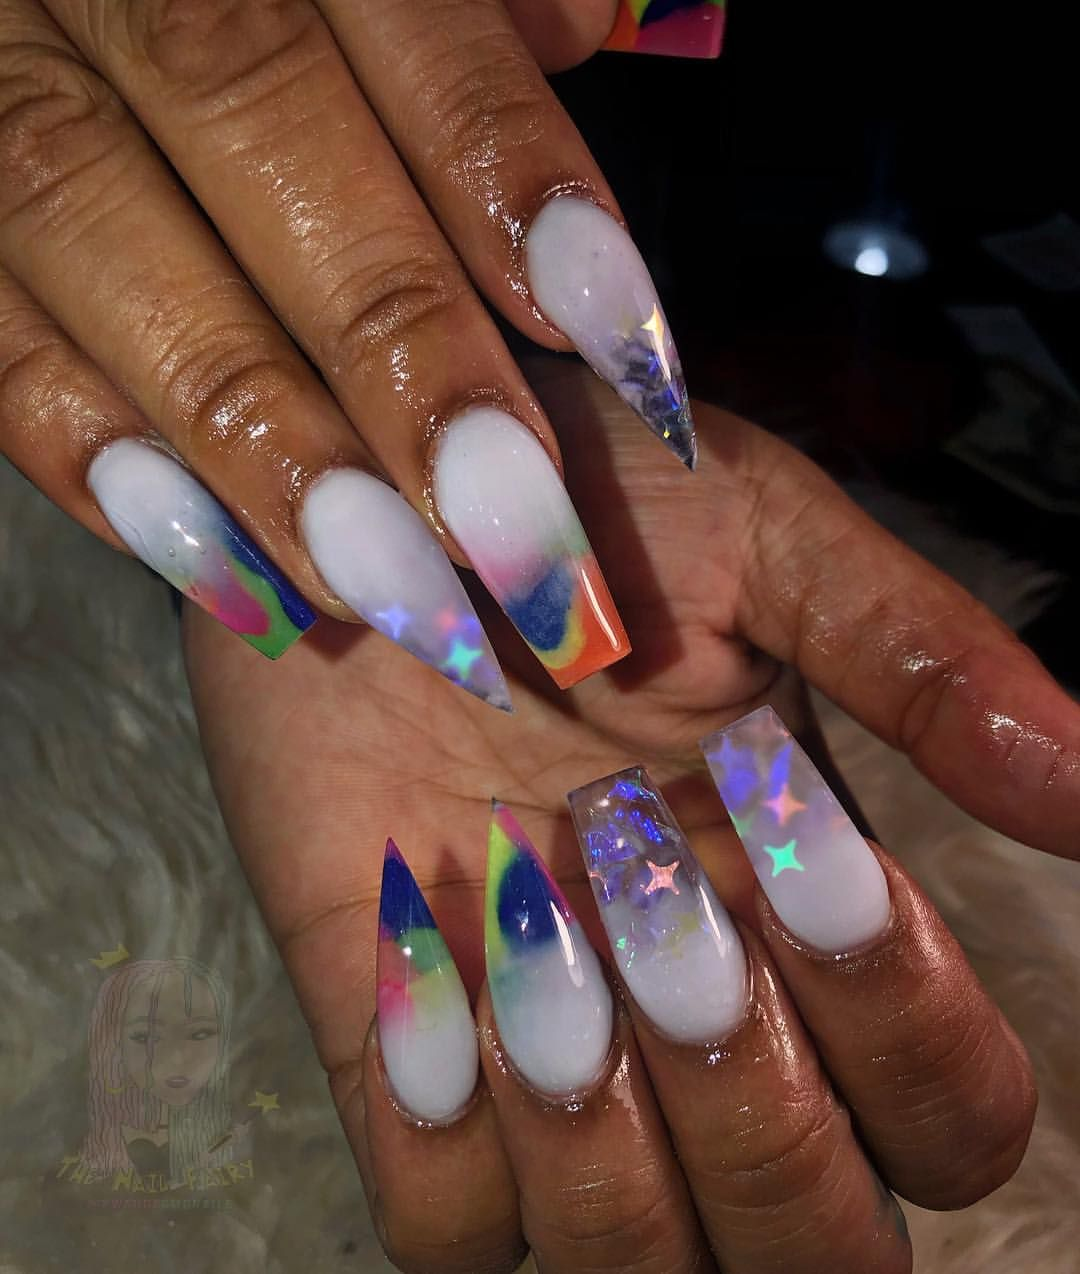 Oh My Oh My What A Colorful Time By Thelilfairy Nails Ombre Ombrenails Colorfulnails Juniebeenails Harlem Glue On Nails Nail Colors Crystal Nails